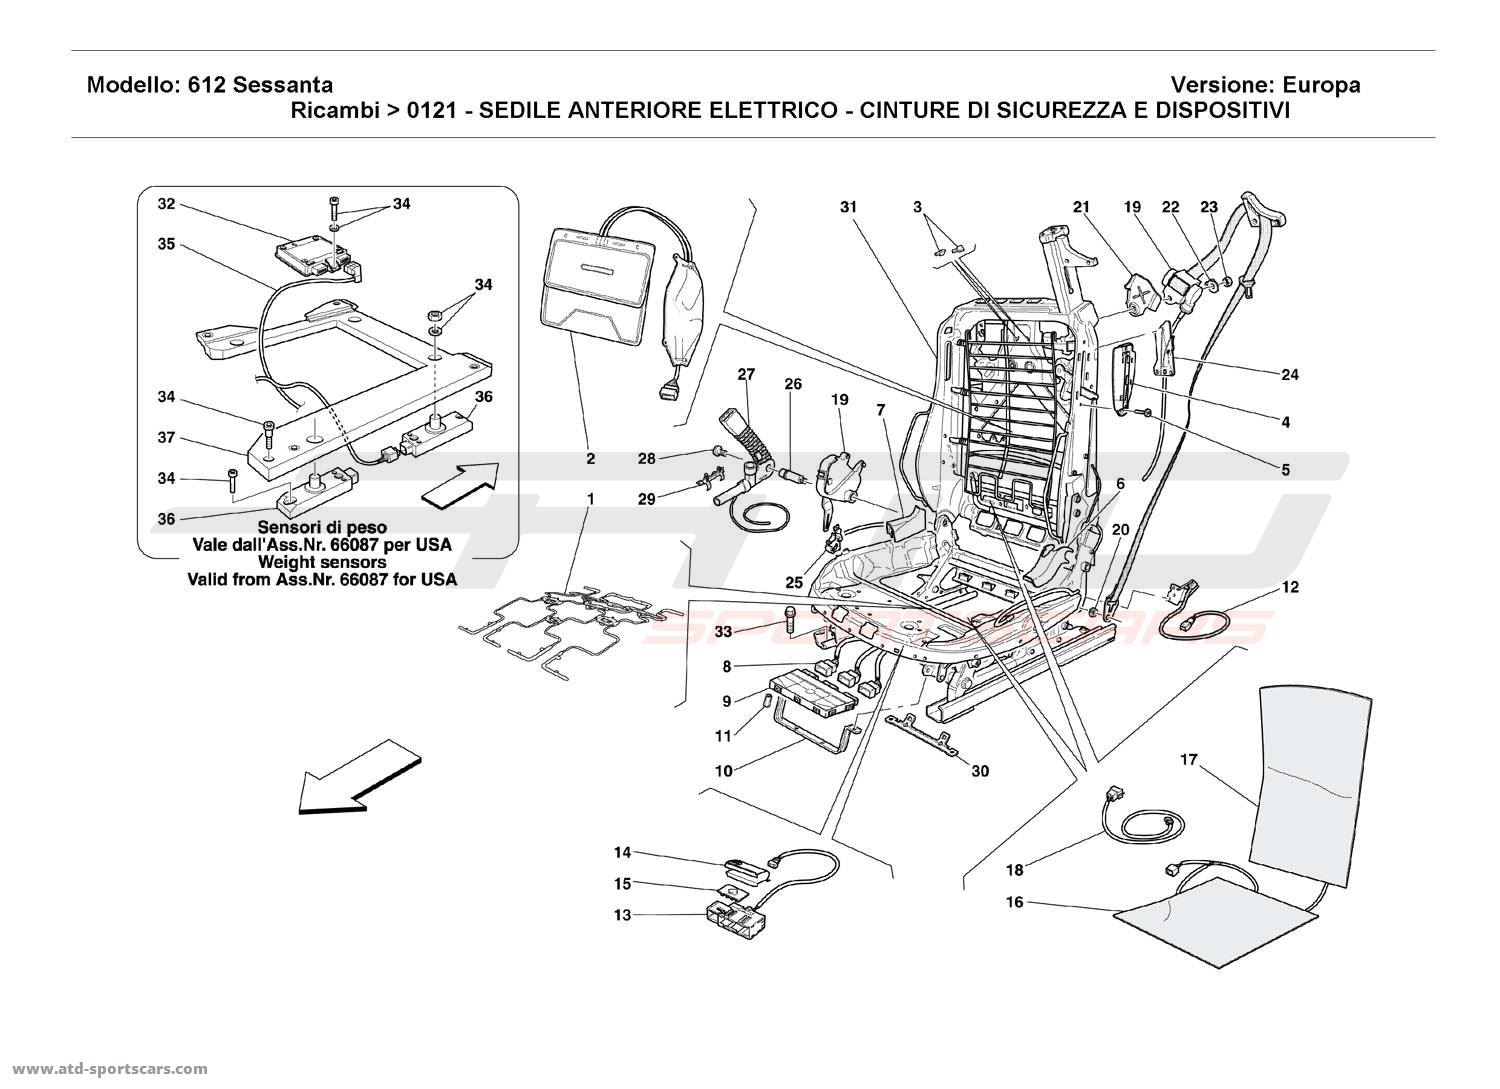 Ferrari 612 Sessanta ELECTRICAL FRONT SEAT - SAFETY BELTS AND DEVICES